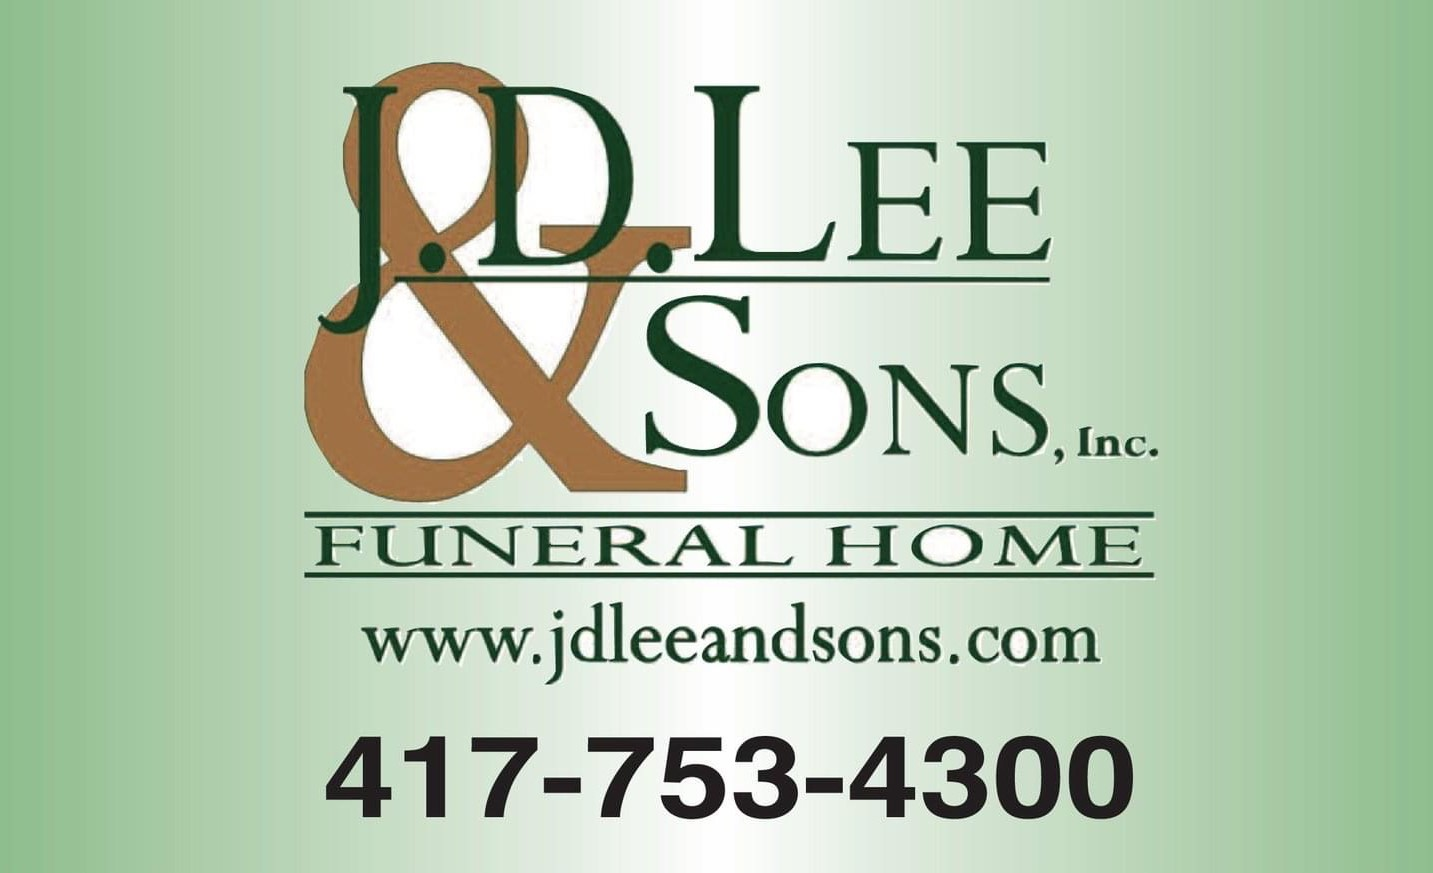 J.D. Lee and Sons Funeral Home